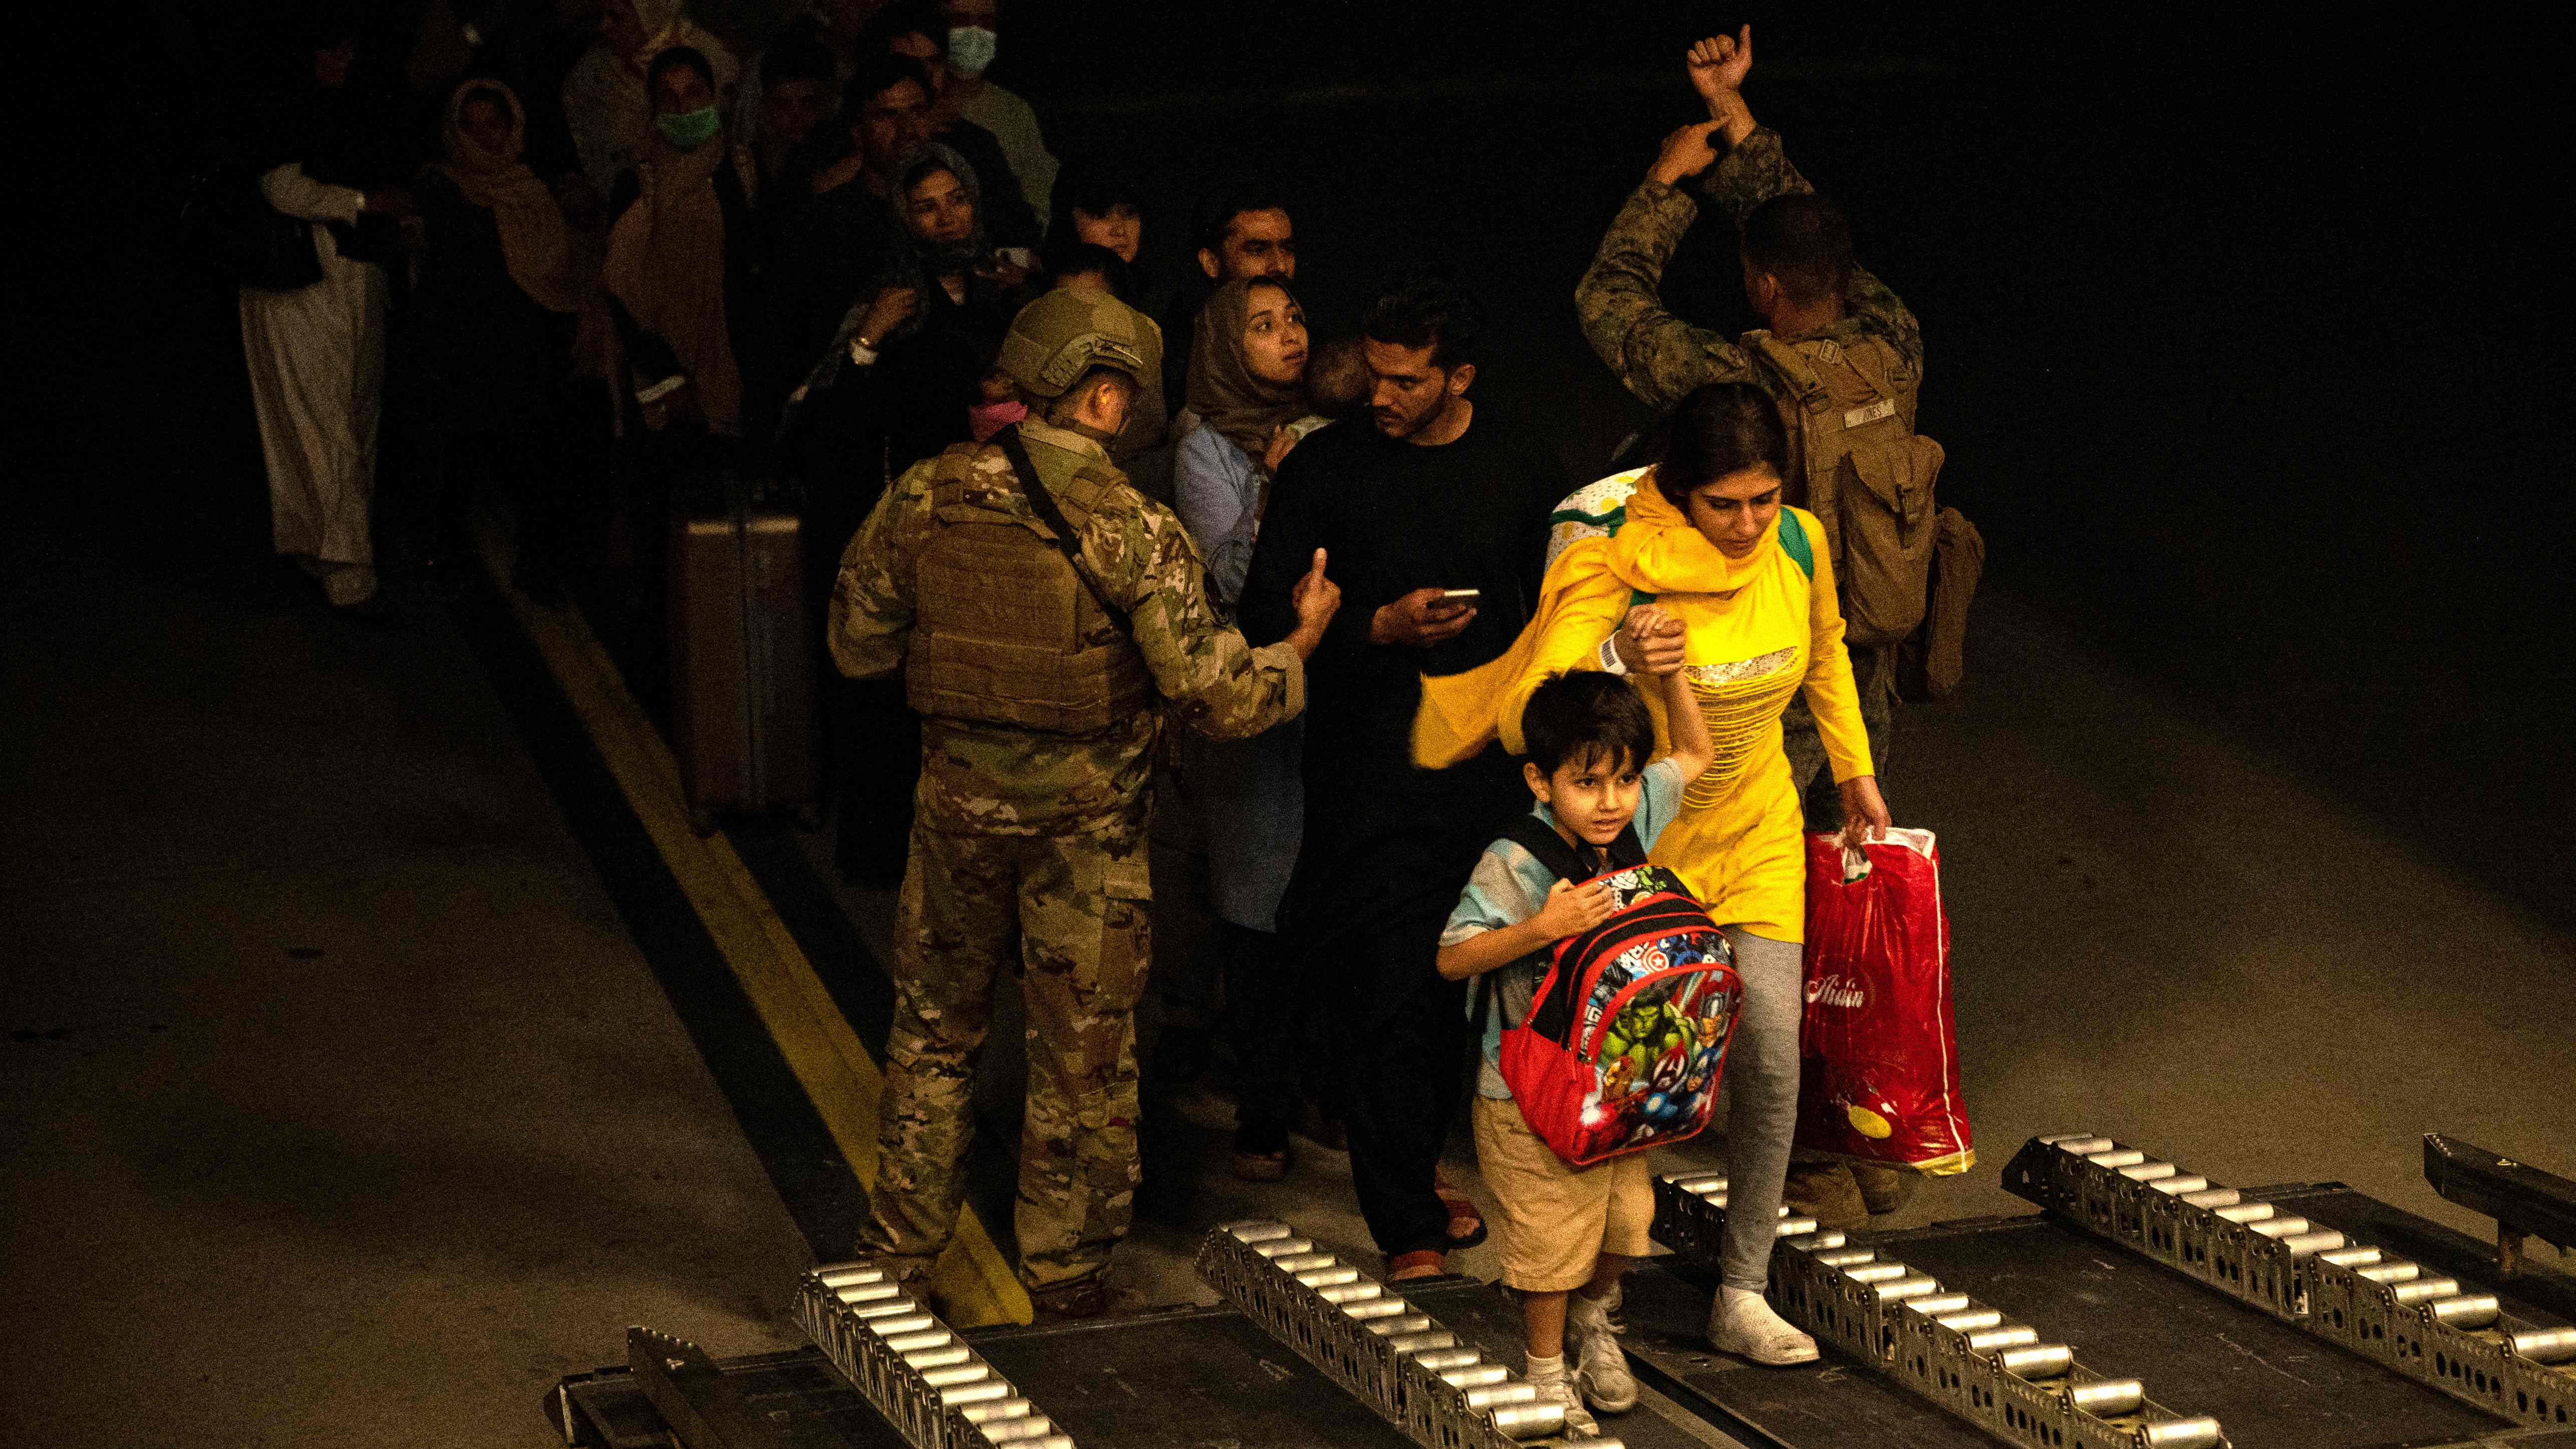 Afghans civilians are evacuated by the US military on Aug. 19, 2021 at an undisclosed location. US evacuation operations from Kabul's airport slowed Friday because the receiving base in Qatar was overflowing and could not receive evacuees.